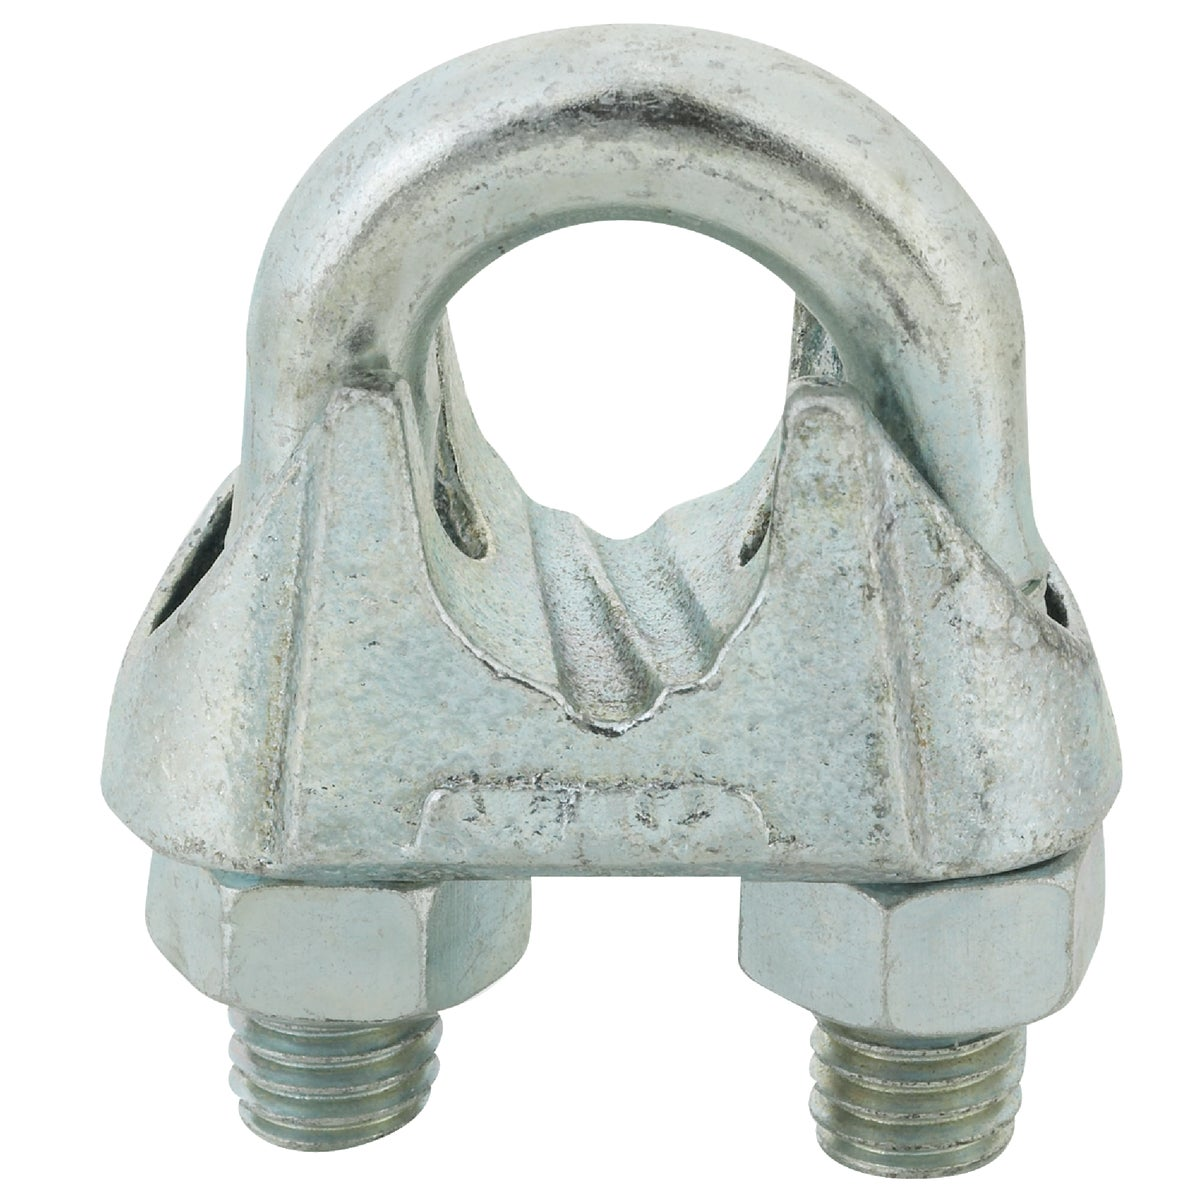 "5/8"" WIRE ROPE CLIP - T7670489 by Cooper Campbell Apex"